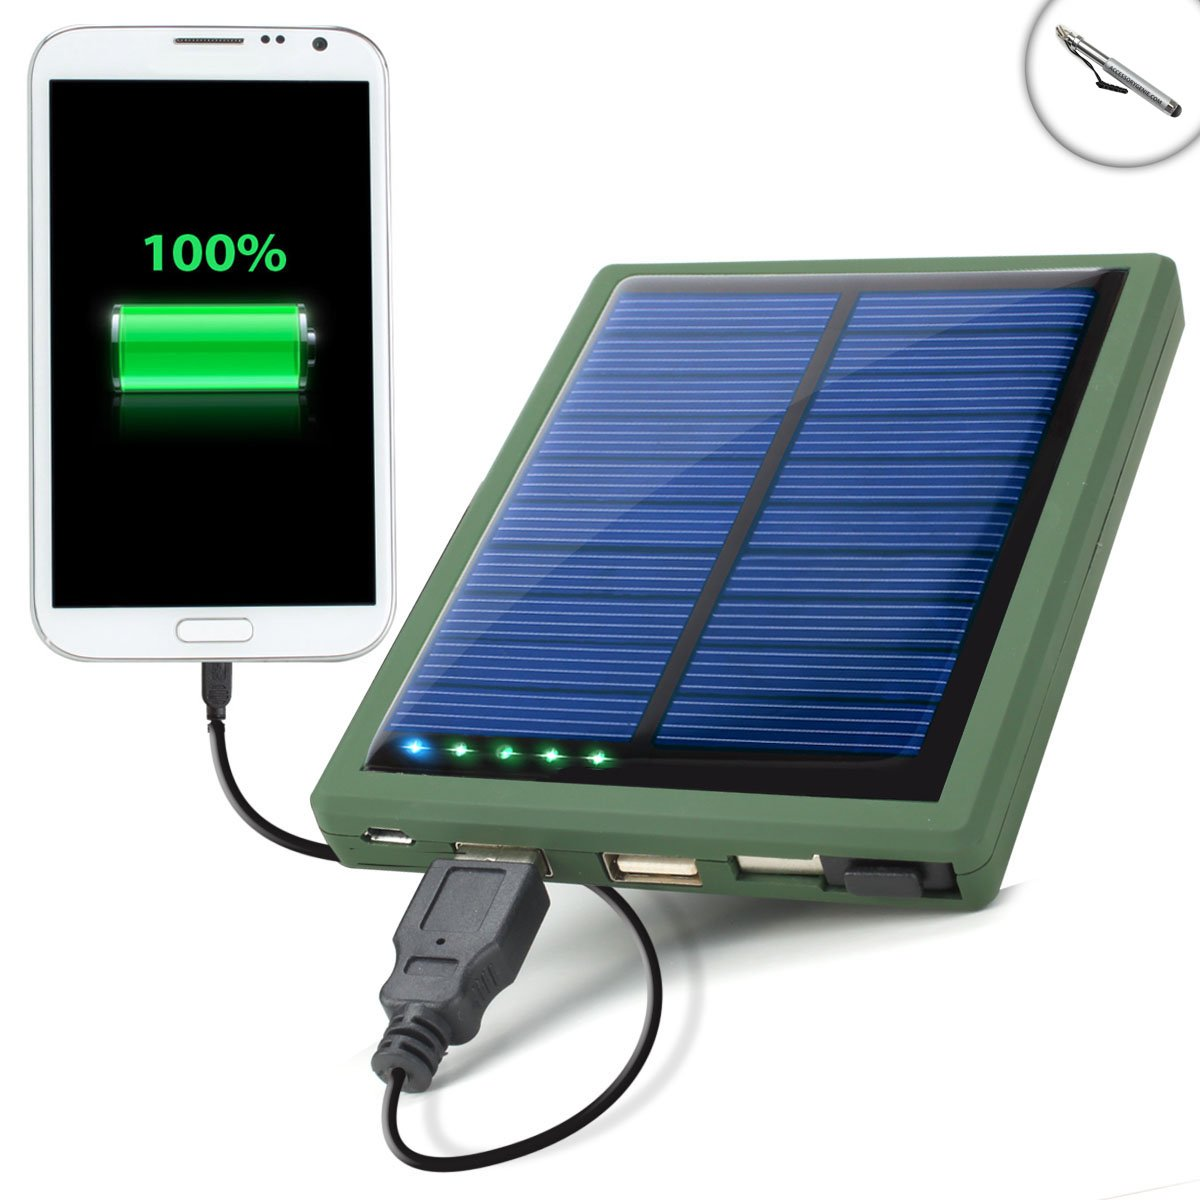 ReVIVE Solar Power Bank Charger & 5000mAh Battery Pack for Media & Internet Tablets - Includes Capacitive Stylus